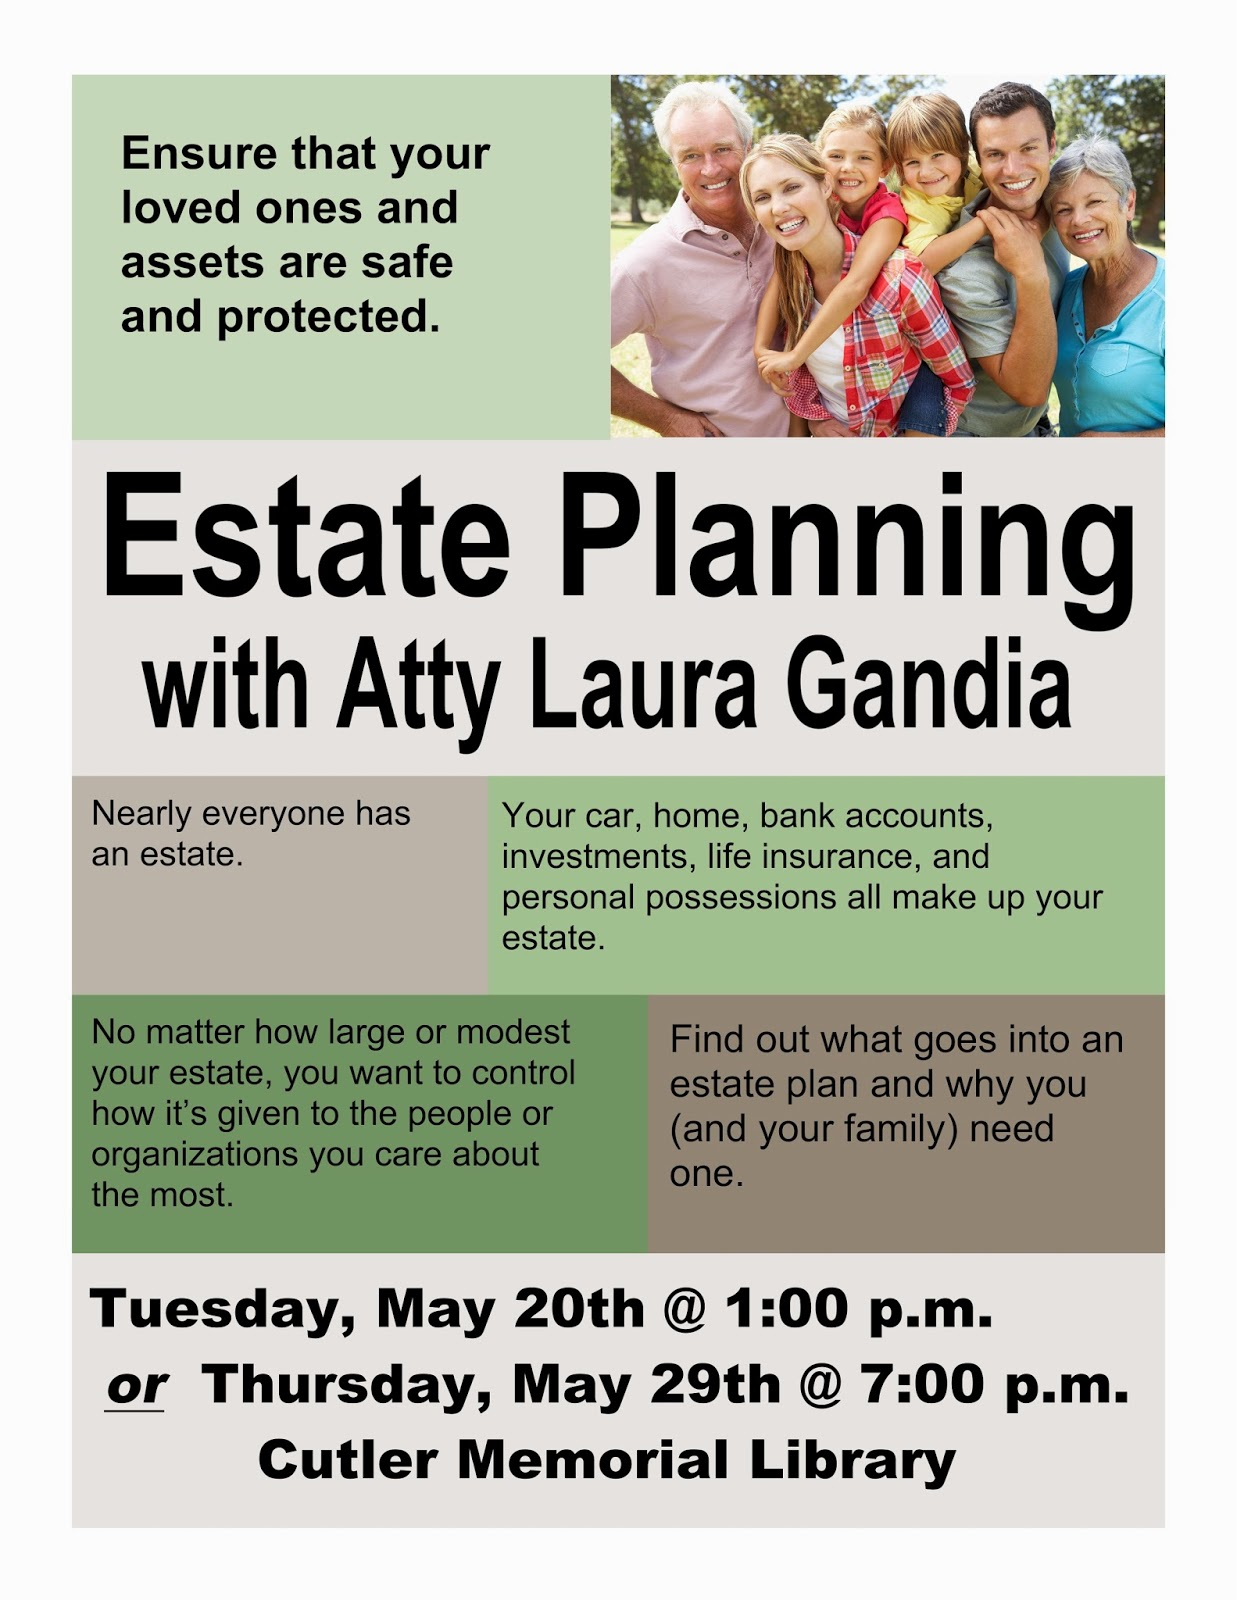 Estate Planning May 20 @ 1:00 or May 29 @ 7:00